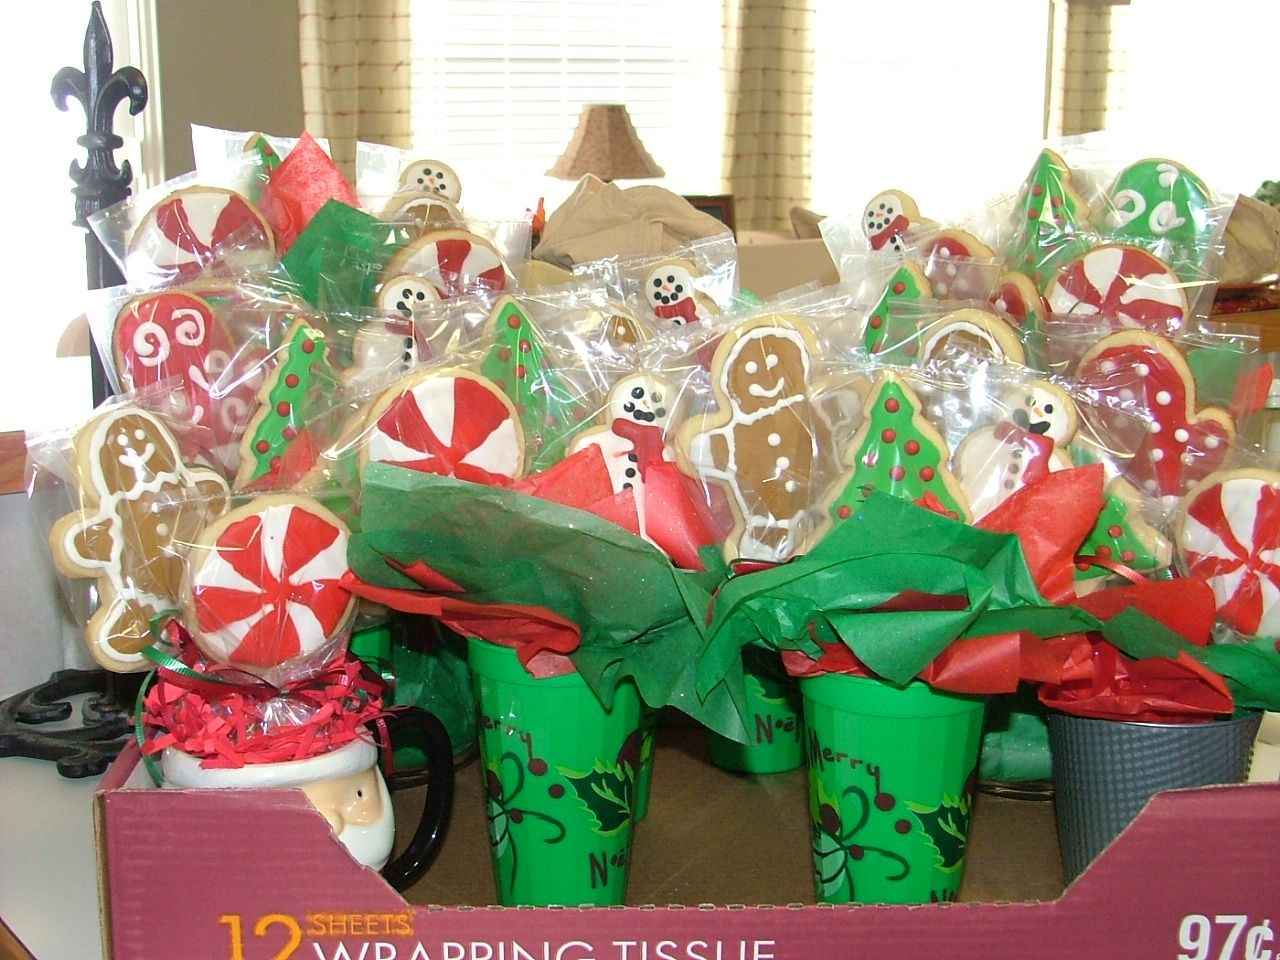 Christmas Cookie Bouquets Bouquets made for my sister's friends.